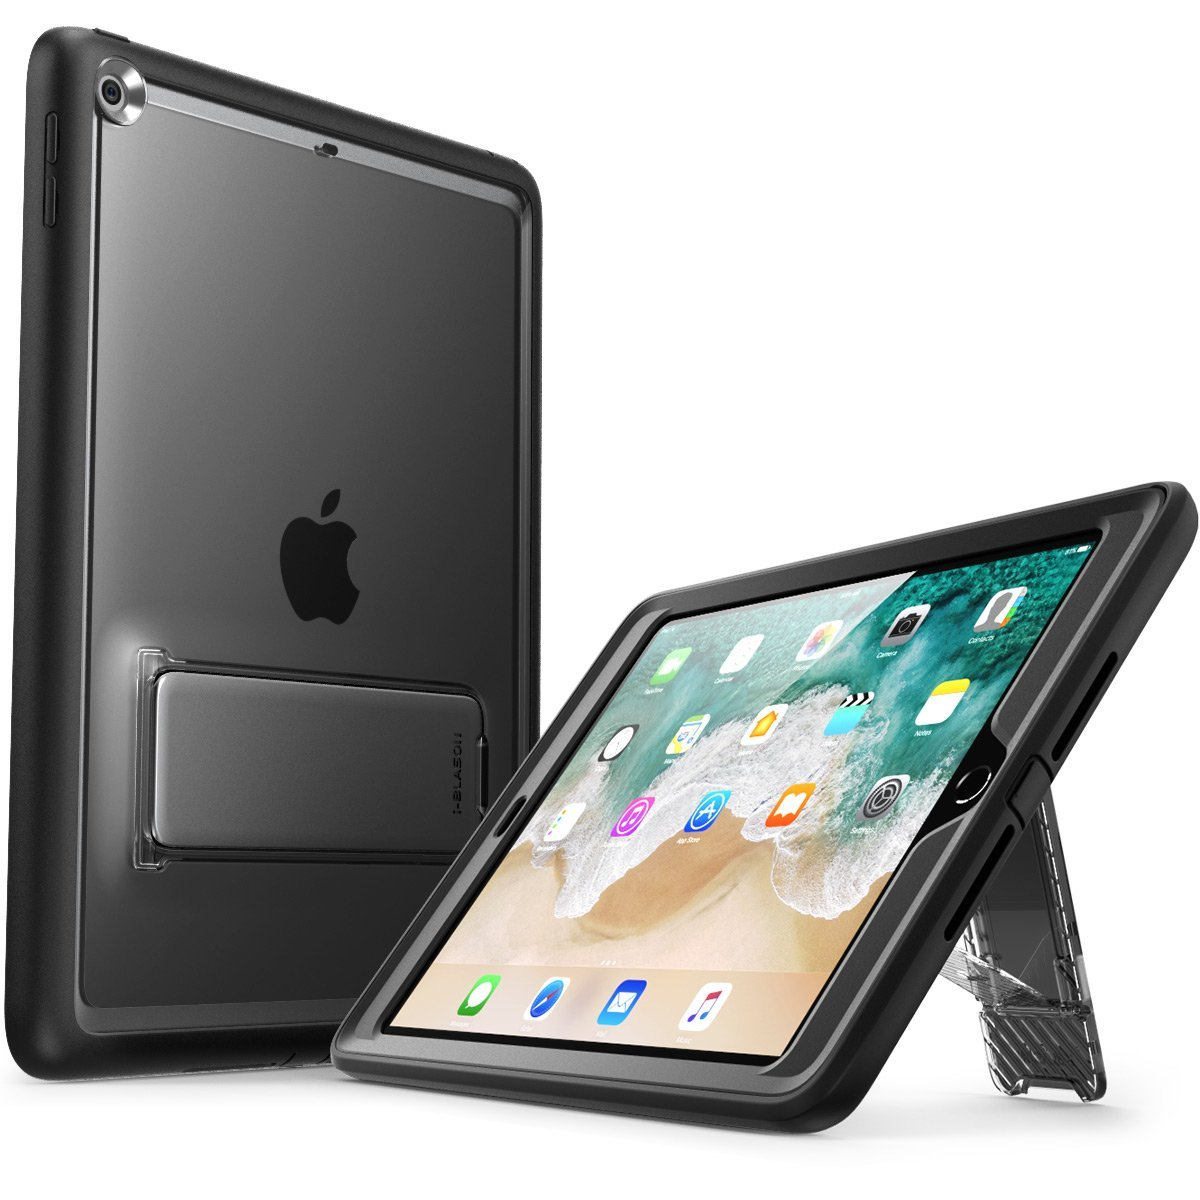 Etui pancerne Supcase i-Blason Ares do Apple iPad 2017